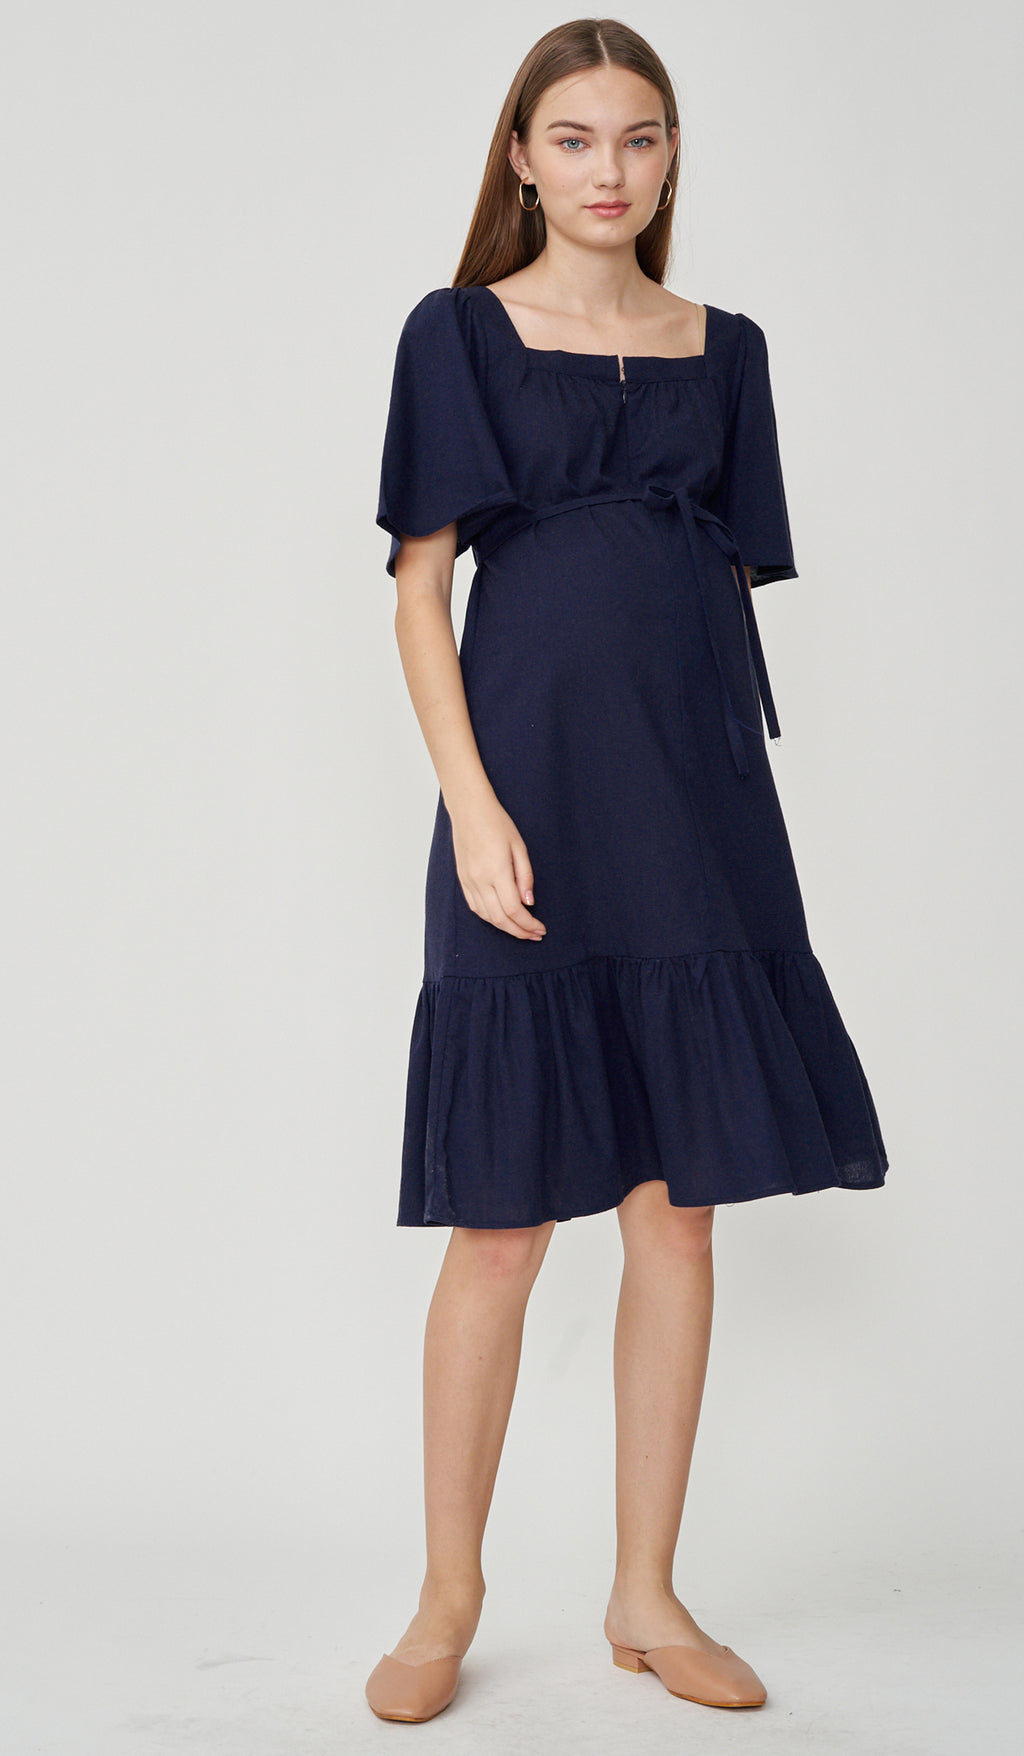 DALIAH 2-WAY NURSING DRESS NAVY